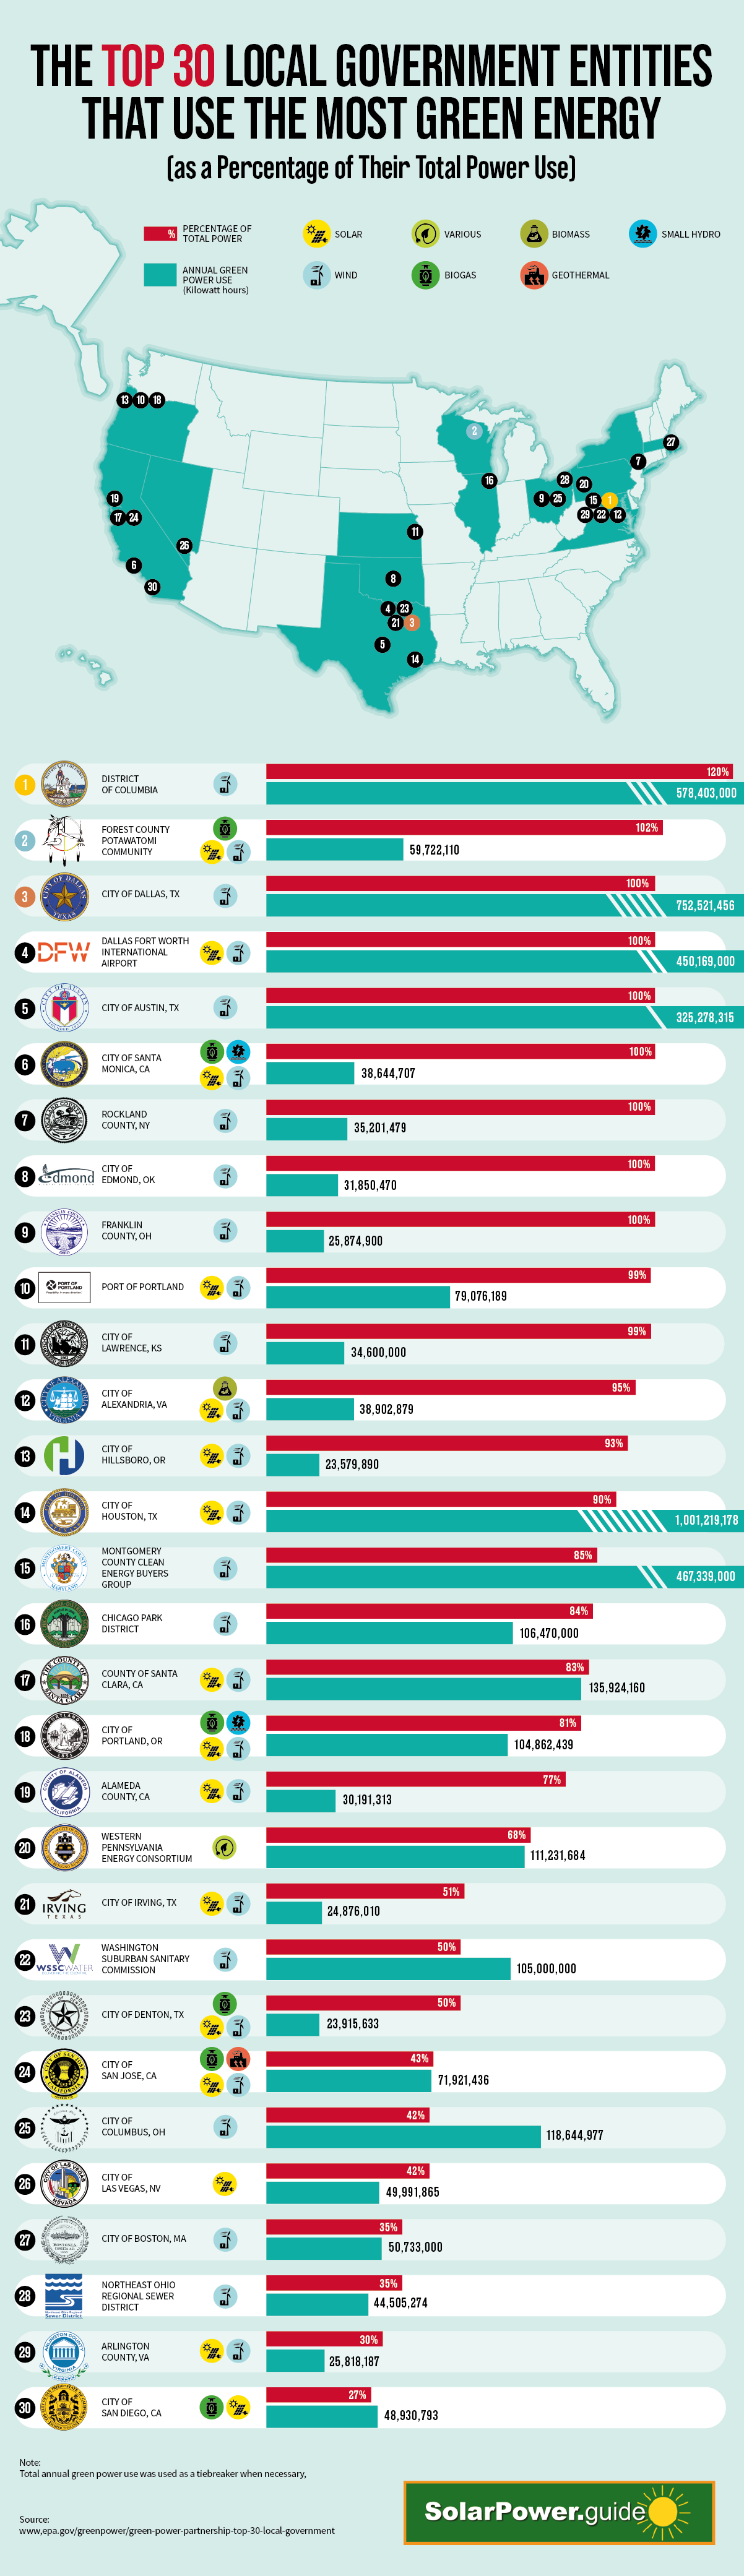 Top 30 Local Government Entities That Use the Most Green Energy